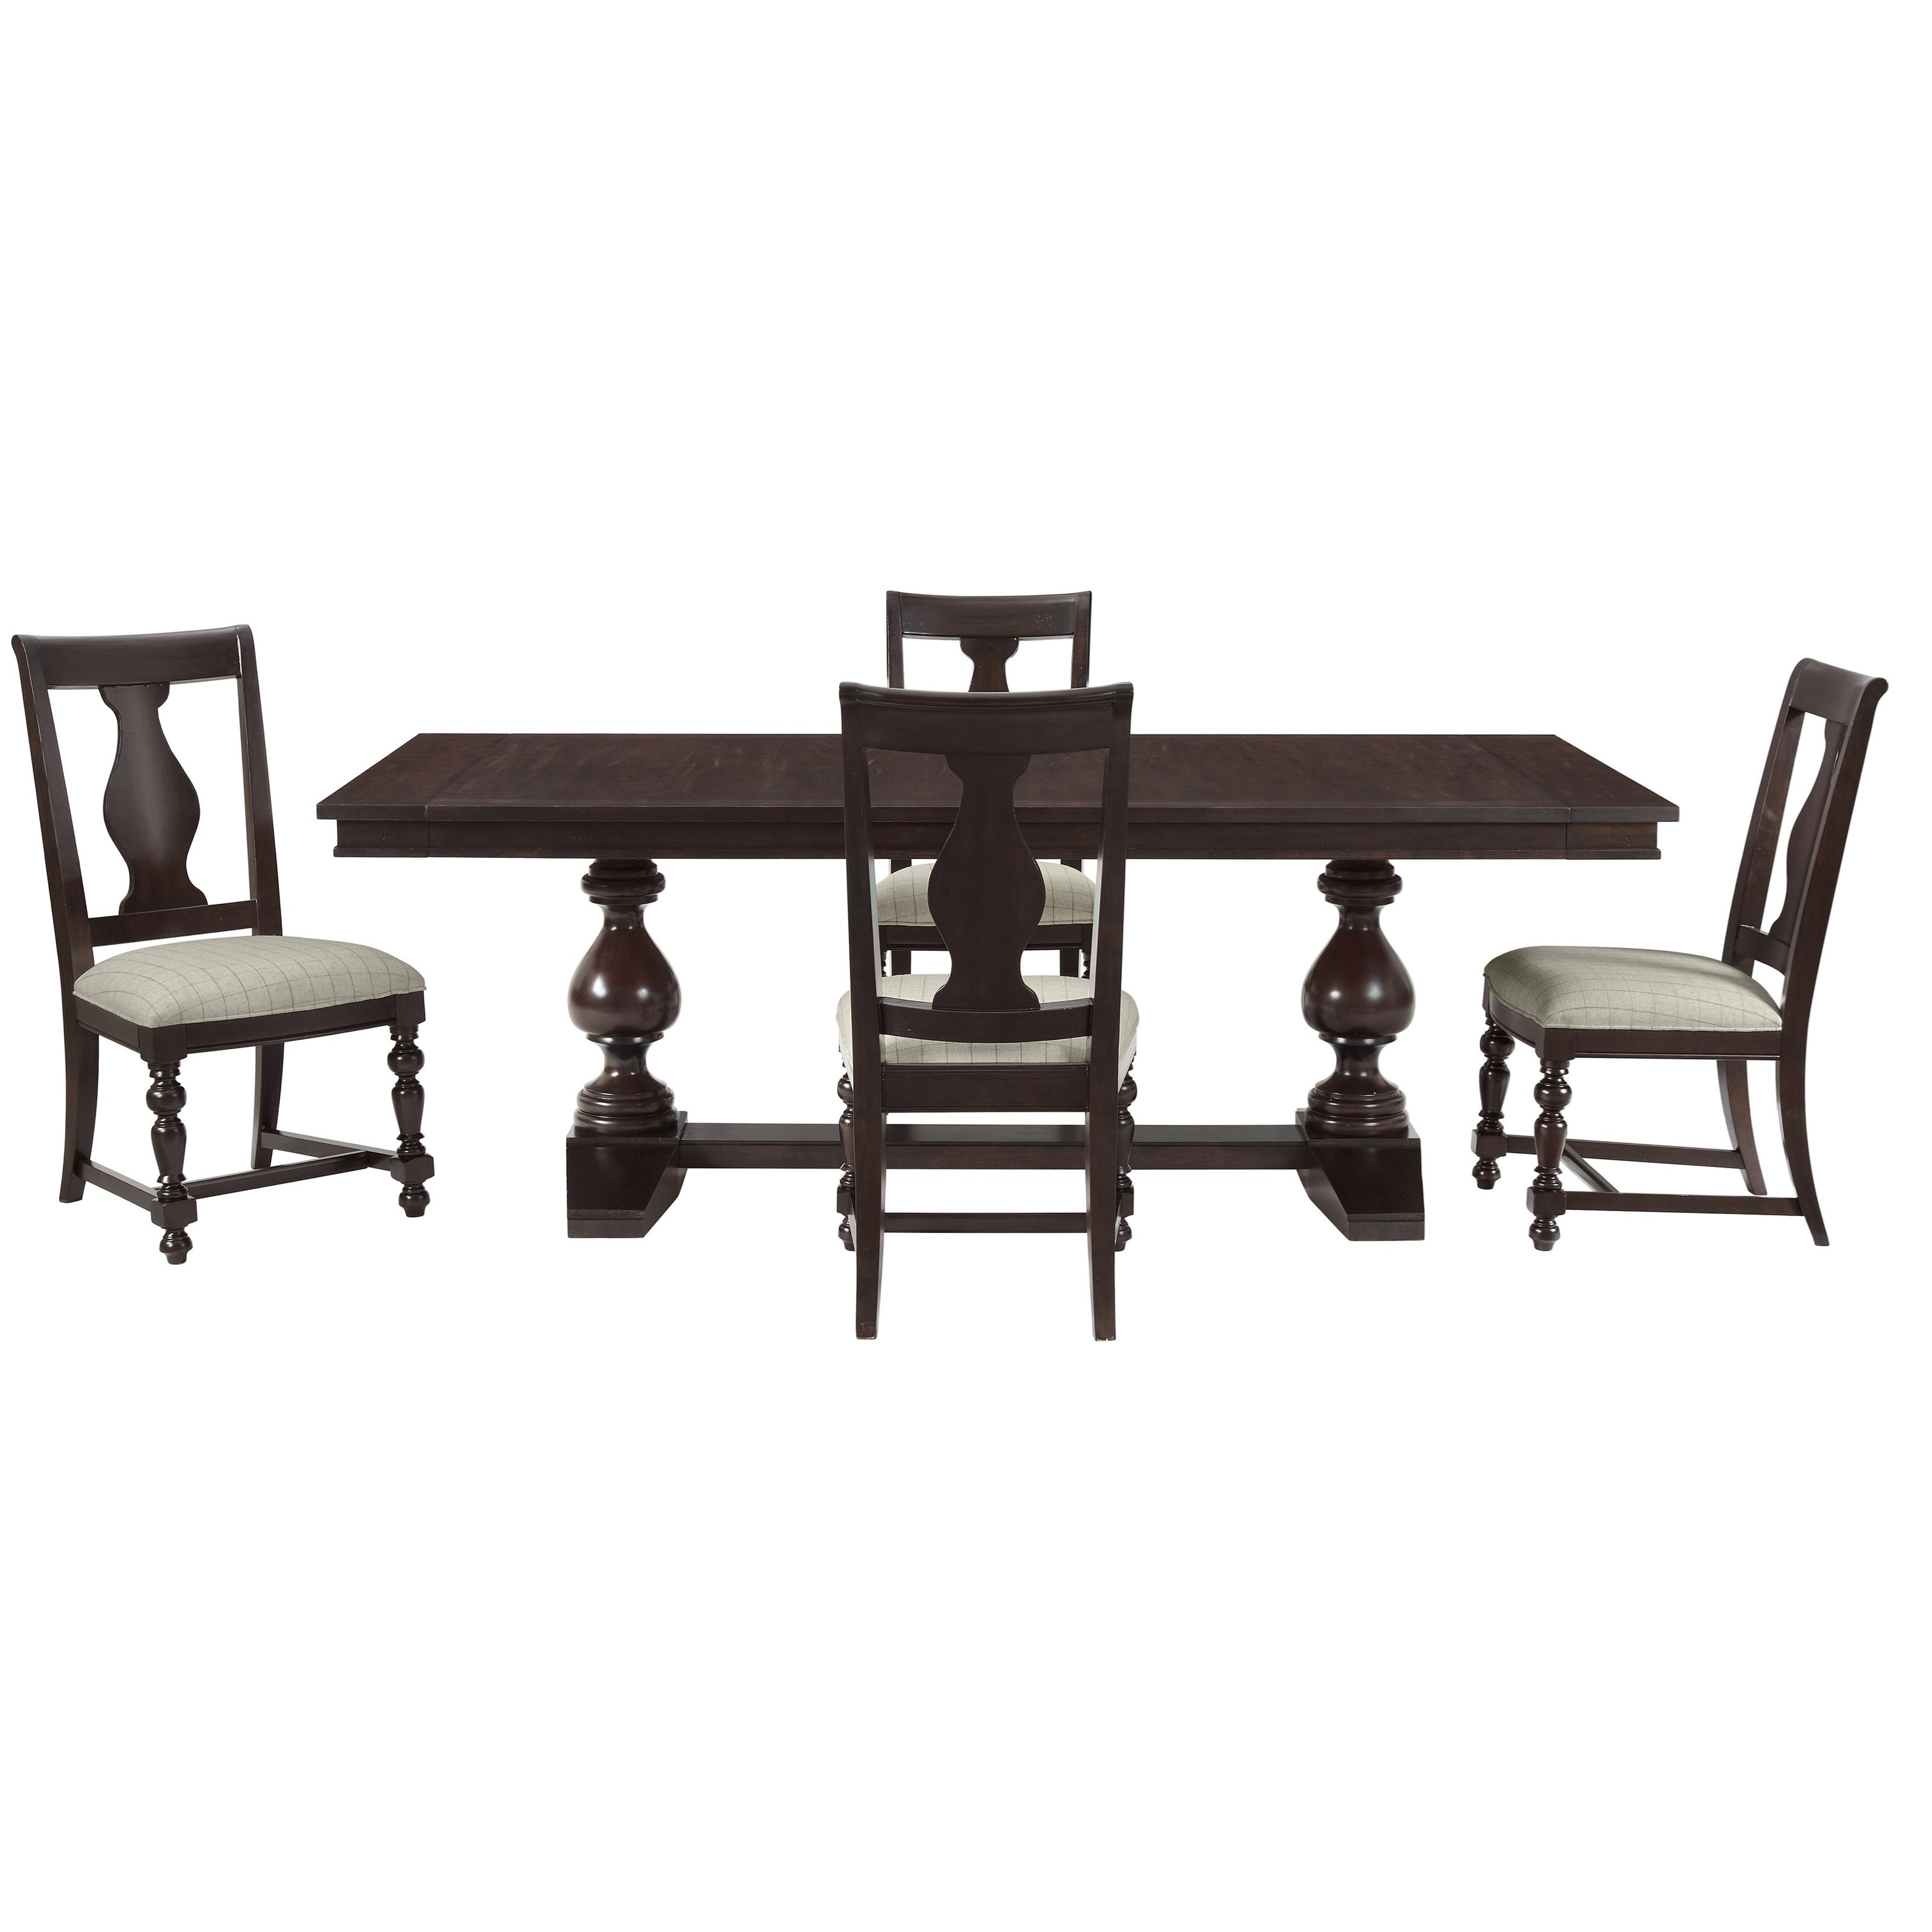 Riverside Furniture Rosemoor 5 Piece Trestle Dining Table Set Lindy S Furniture Company Dining 5 Piece Sets